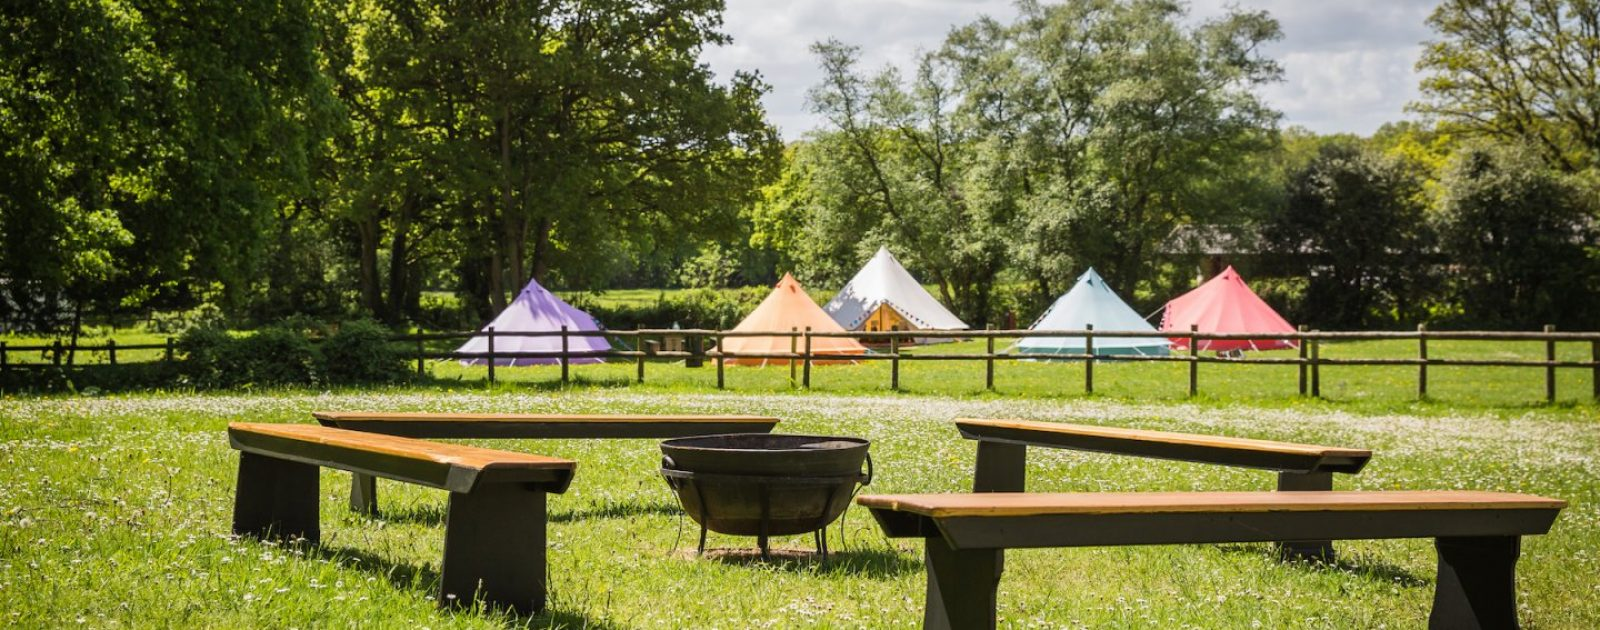 Tropic camp at our hen camp on the outskirts of the New Forest